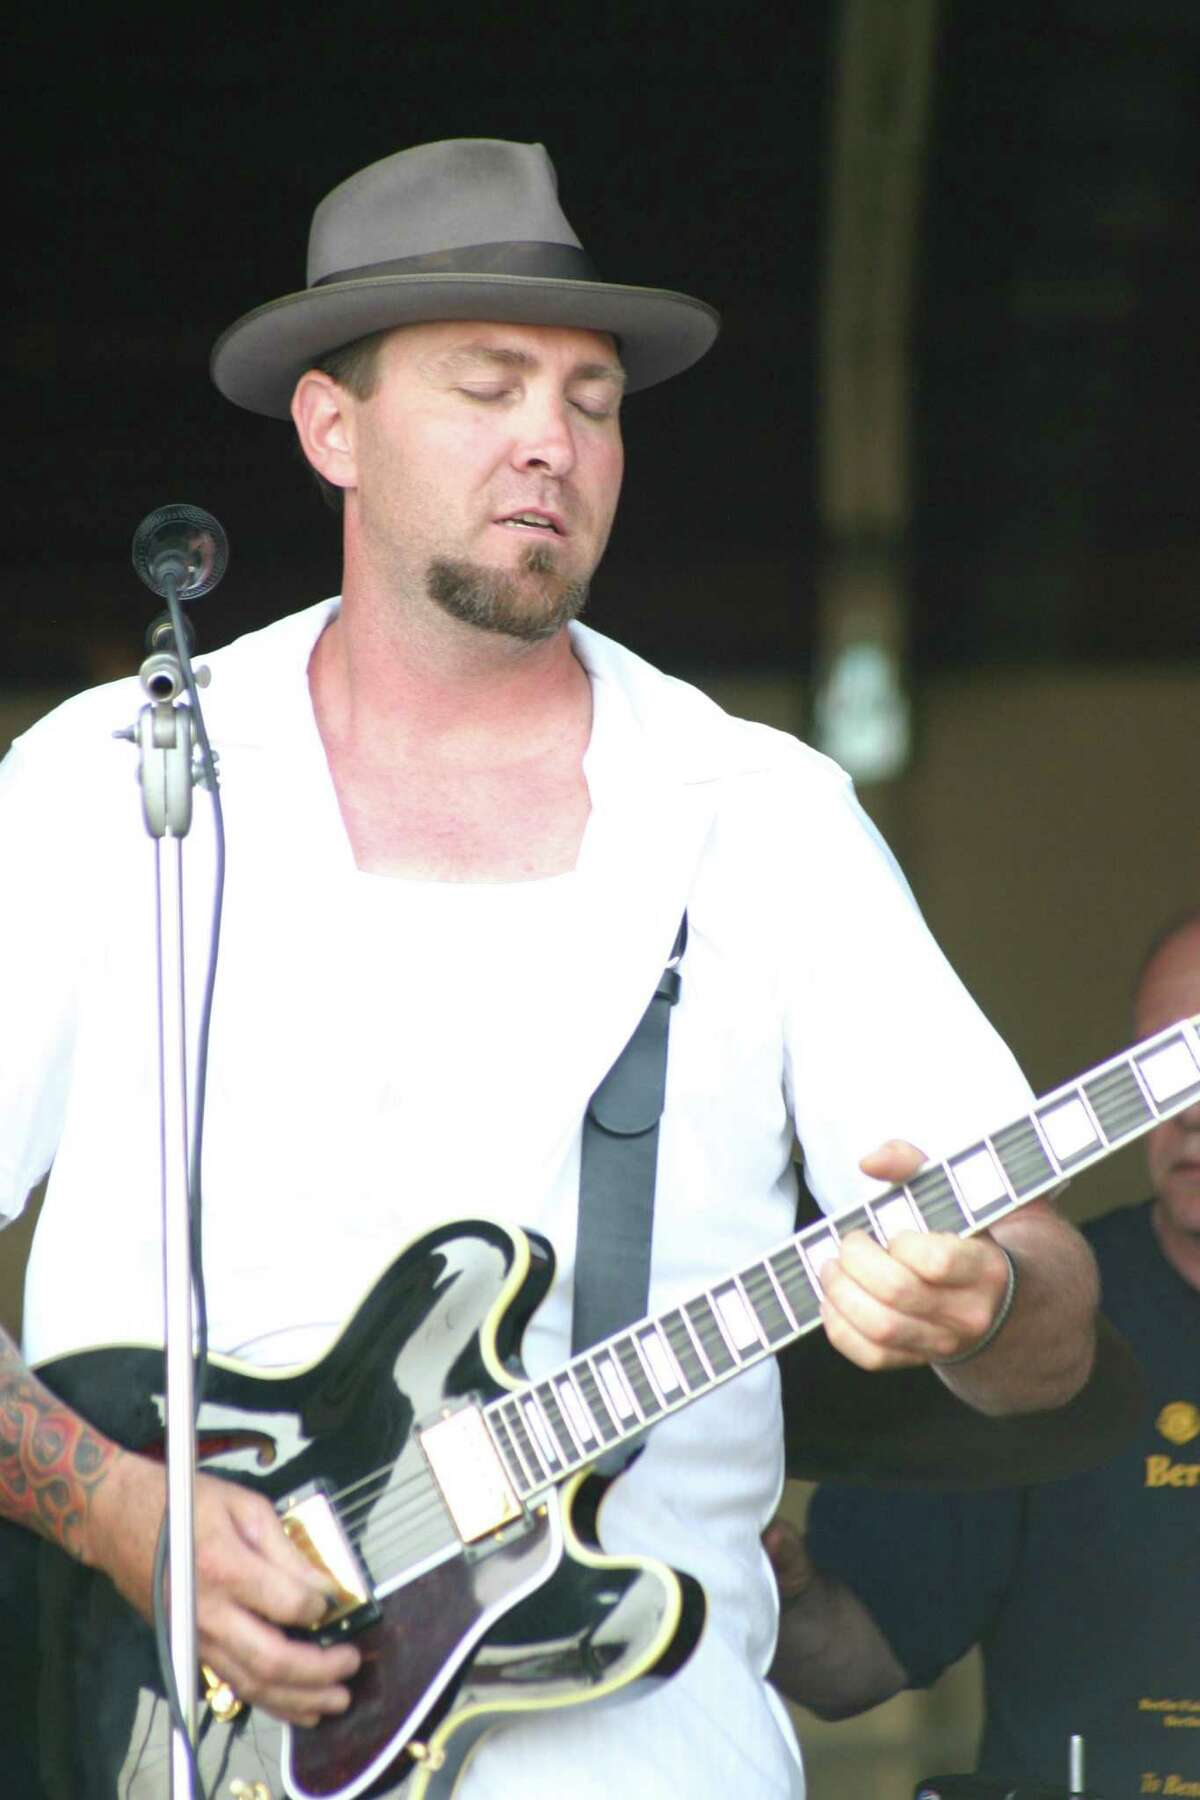 In Torrington, Sasso's Coal Fired Pizza's Live Music Thursday will feature the Eran Troy Danner Band.